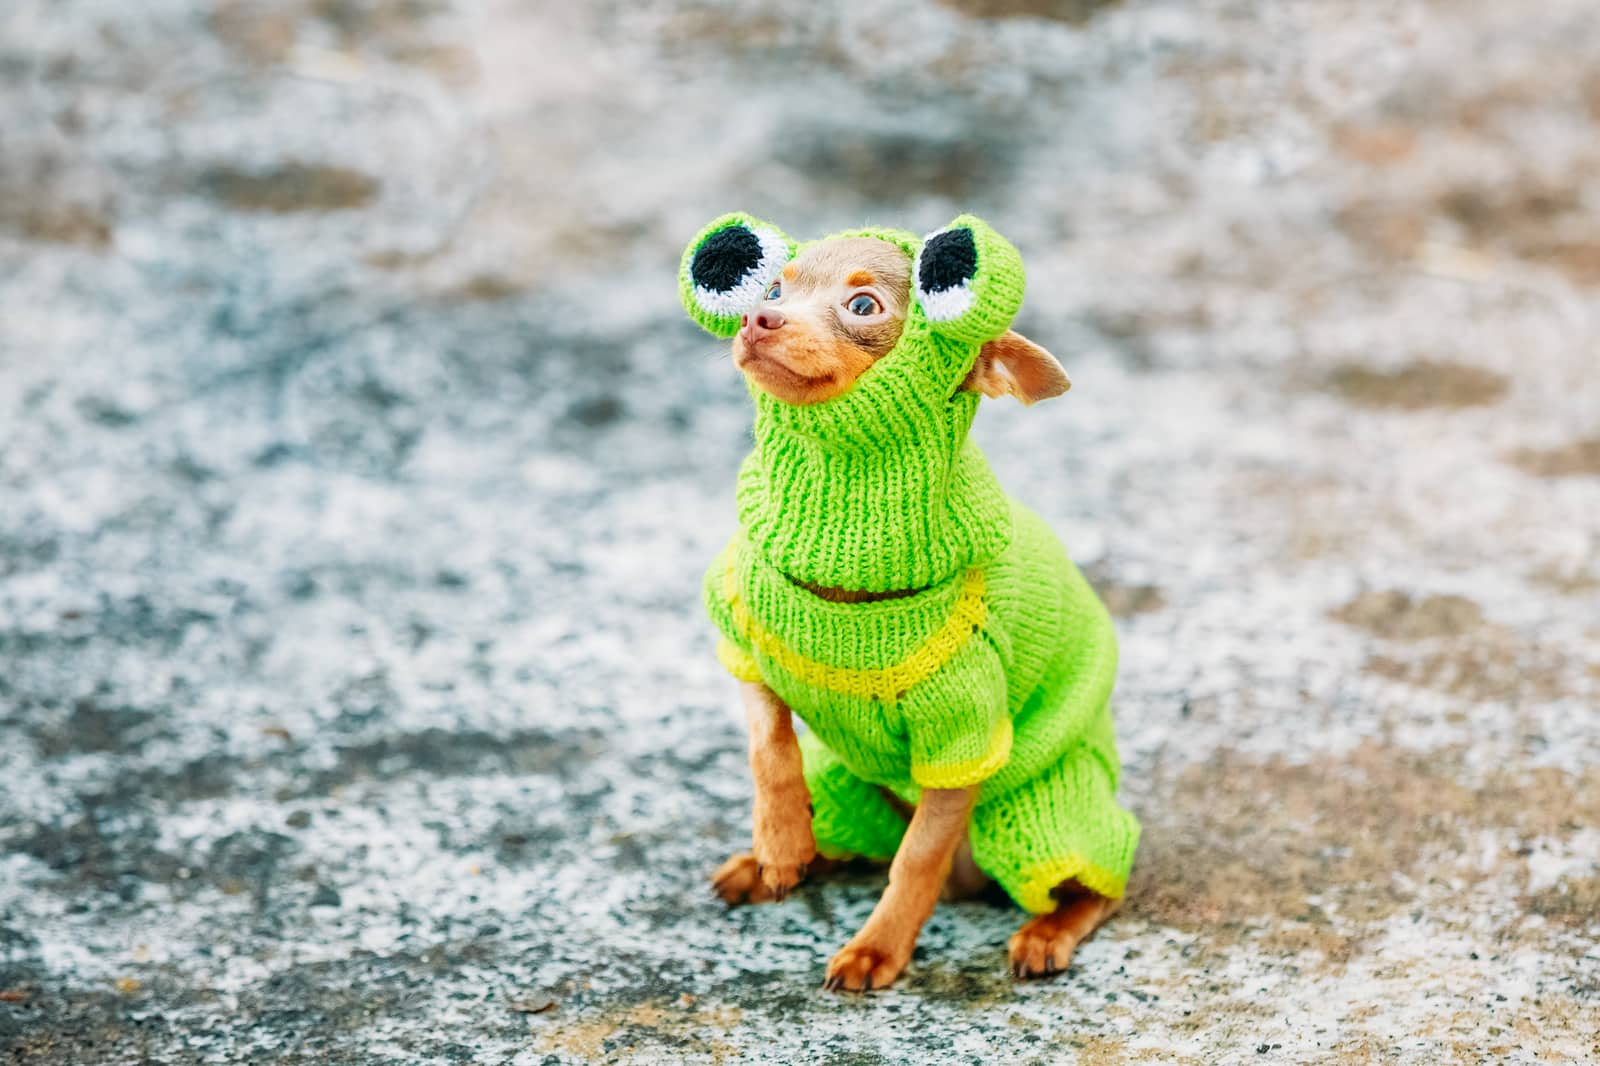 Small, brown Chihuahua dressed in a knitted frog costume.